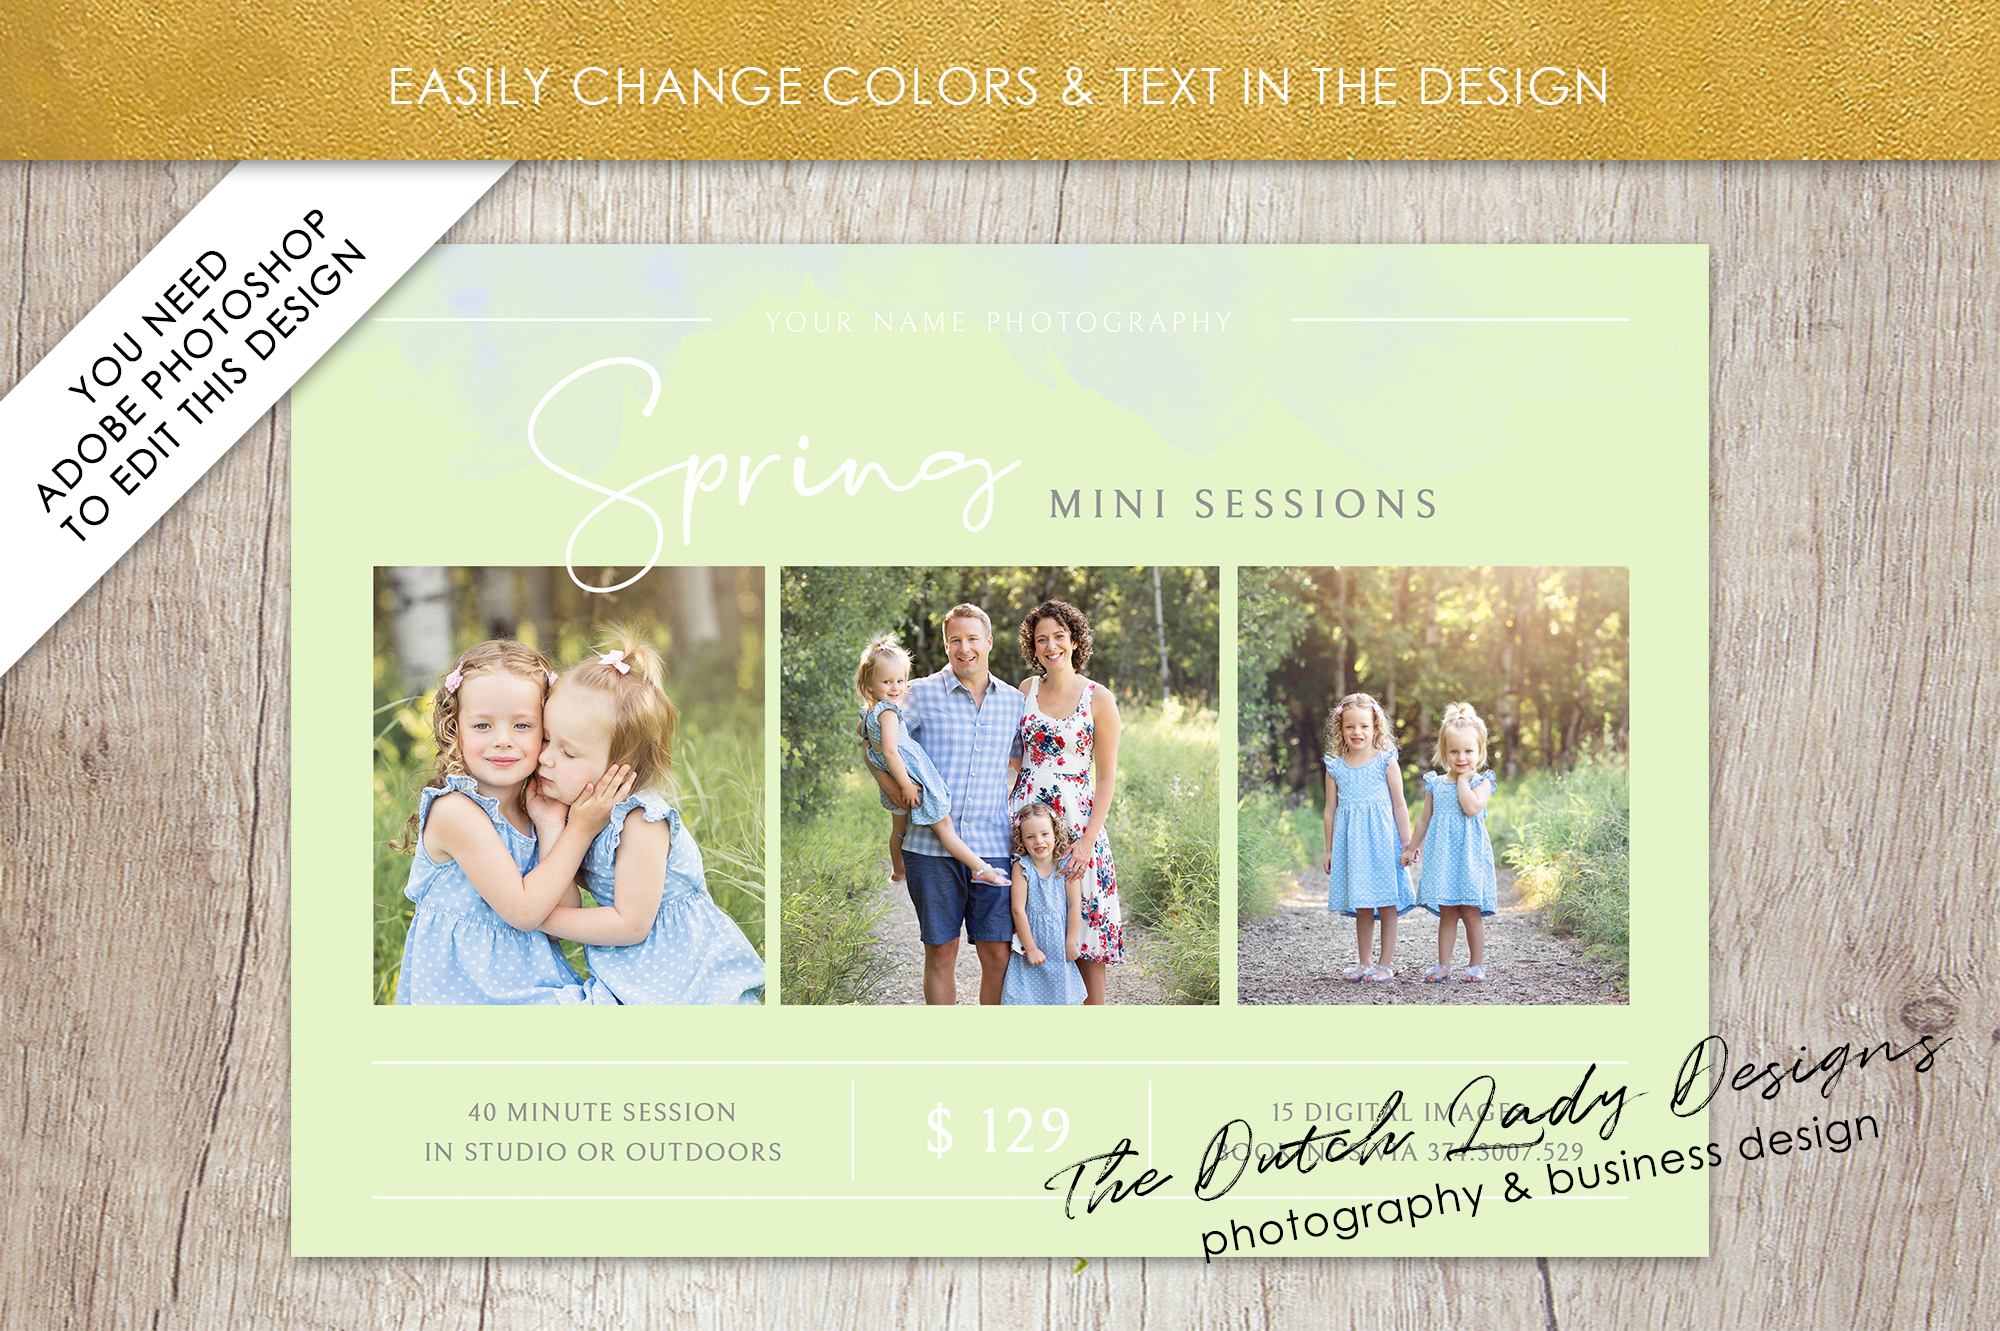 PSD Spring Photo Session Card Template - Design #38 example image 3